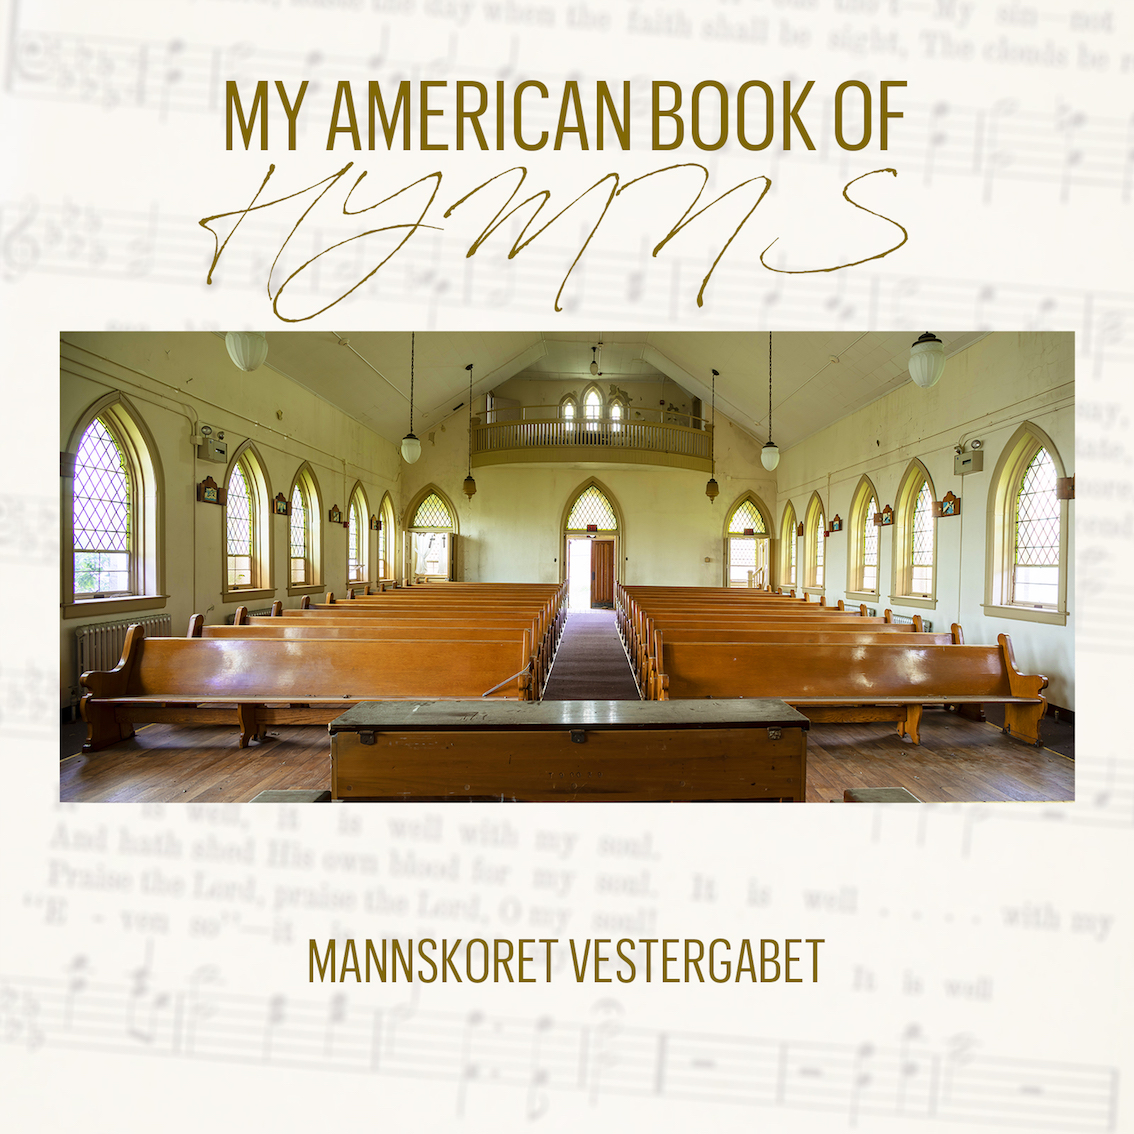 My American book of hymns